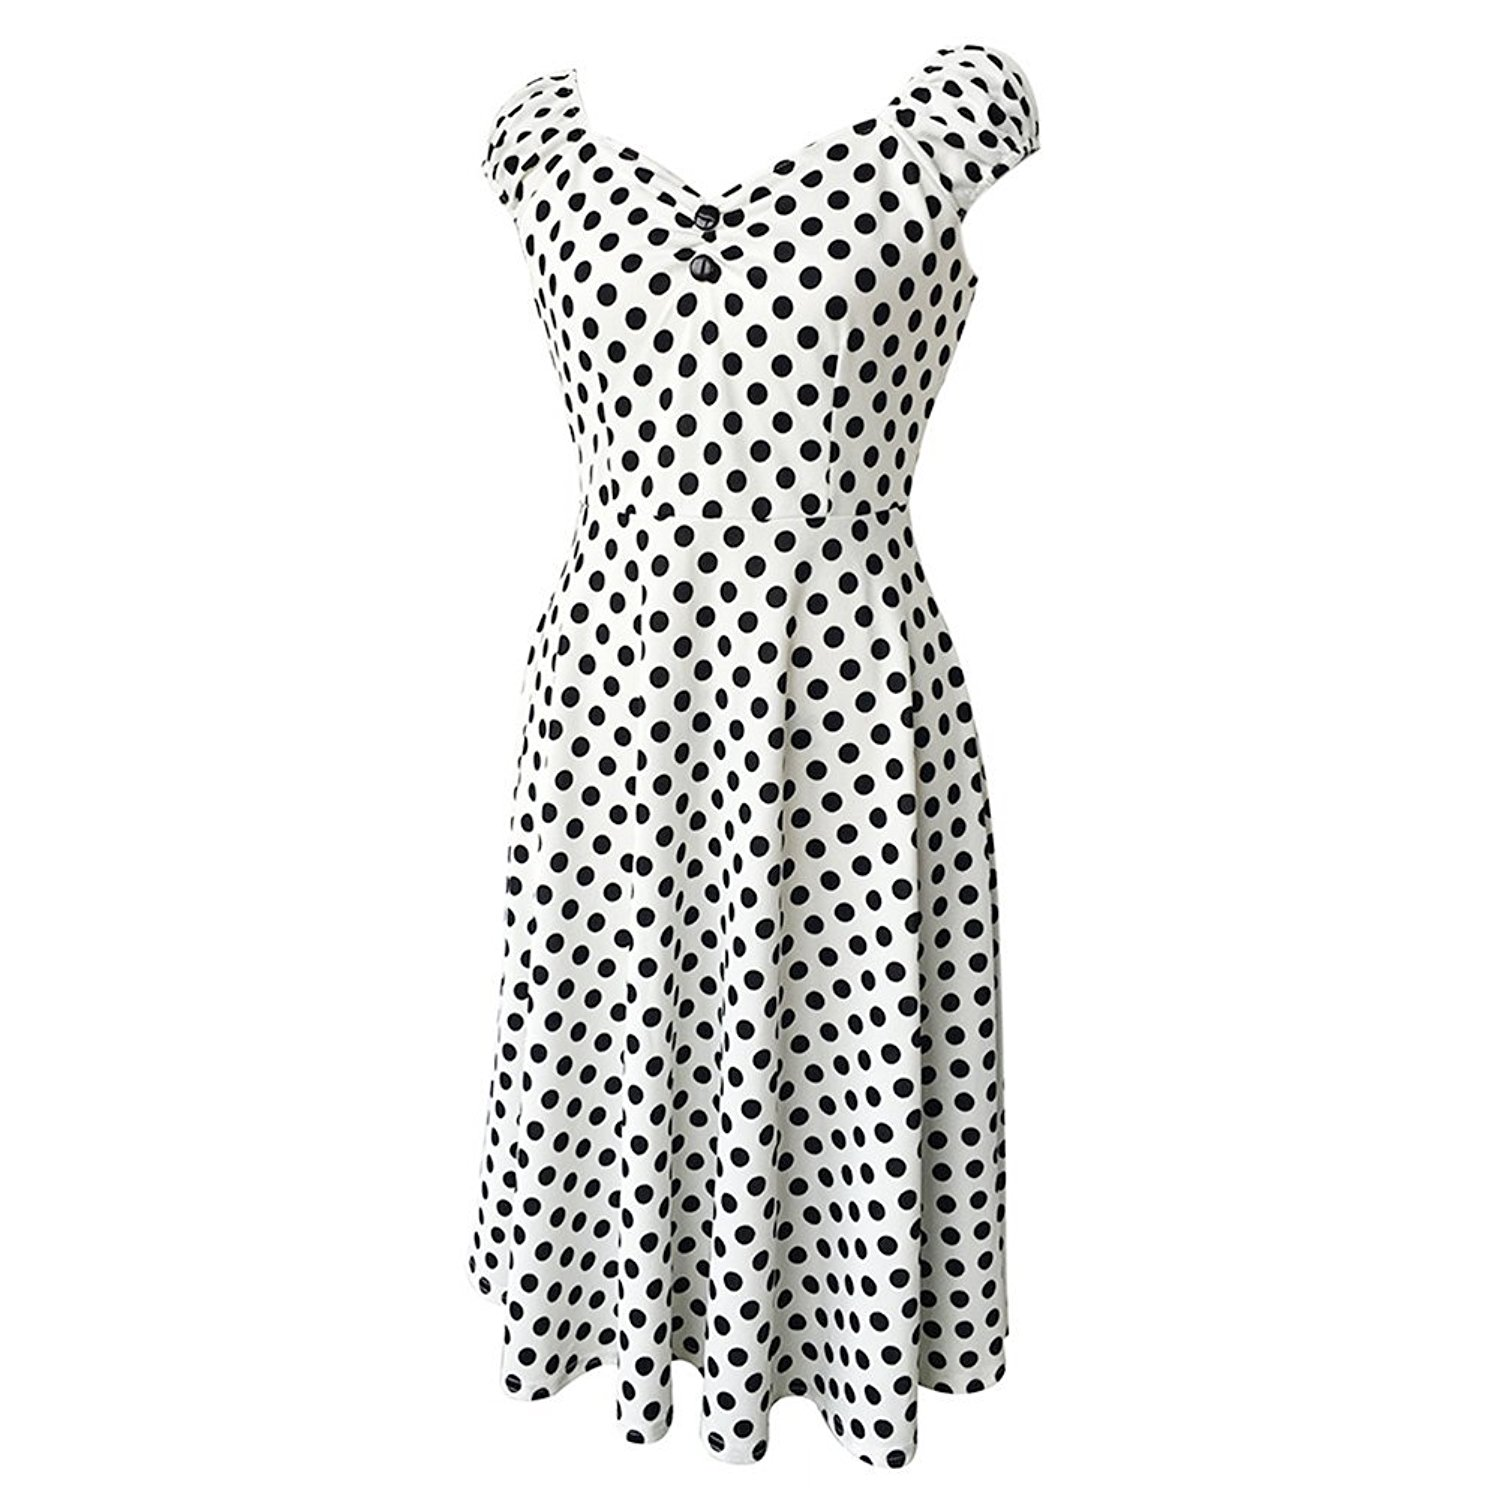 cheap white 1950s dress find white 1950s dress deals on line at 1950s Petticoat get quotations jescrich women s polka dots 1950s style vintage capshoulder swing party dress white